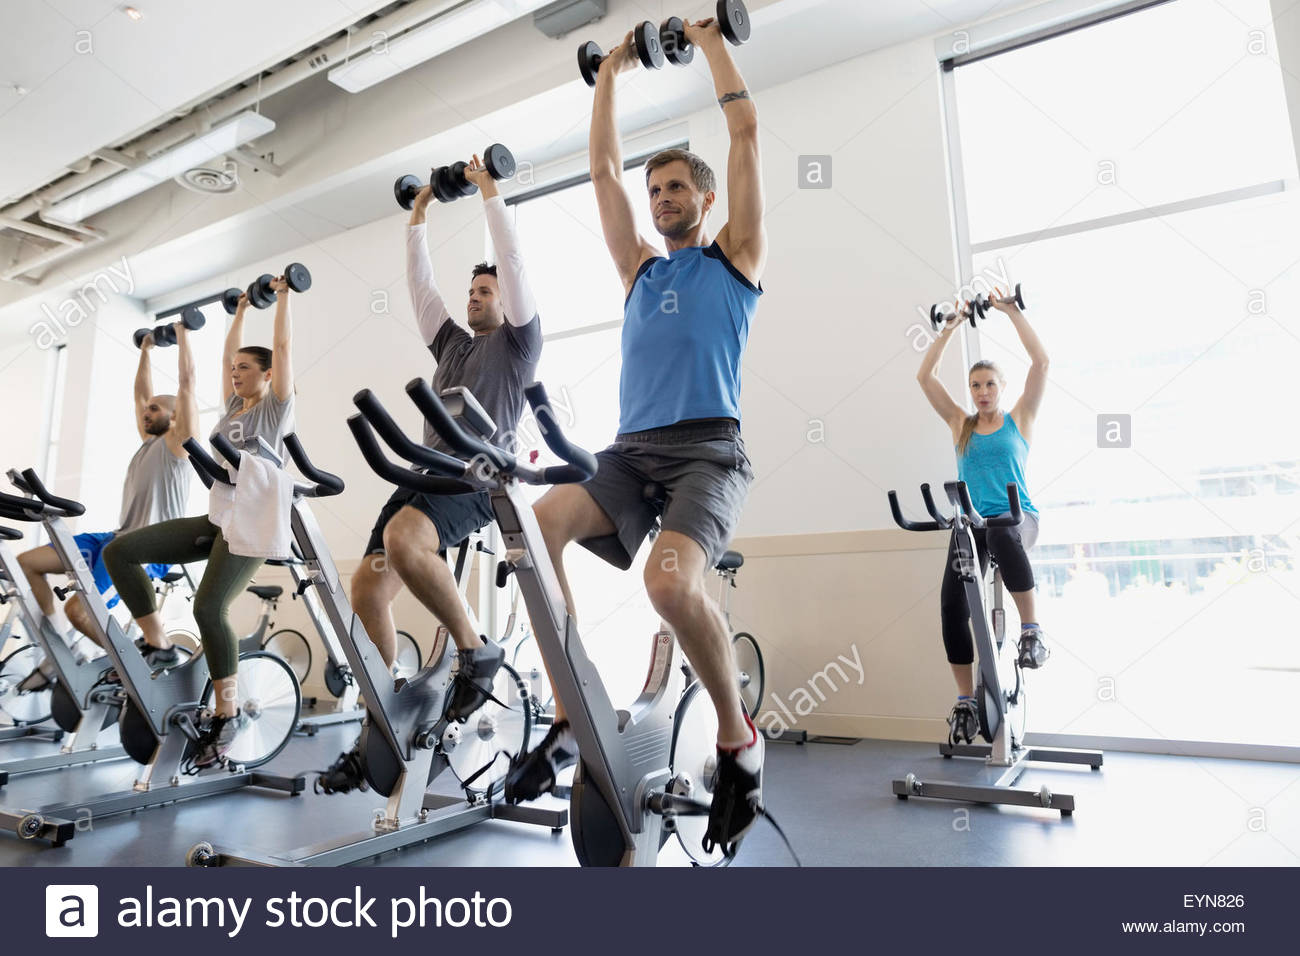 Spin class holding barbells overhead stationary bikes gym - Stock Image